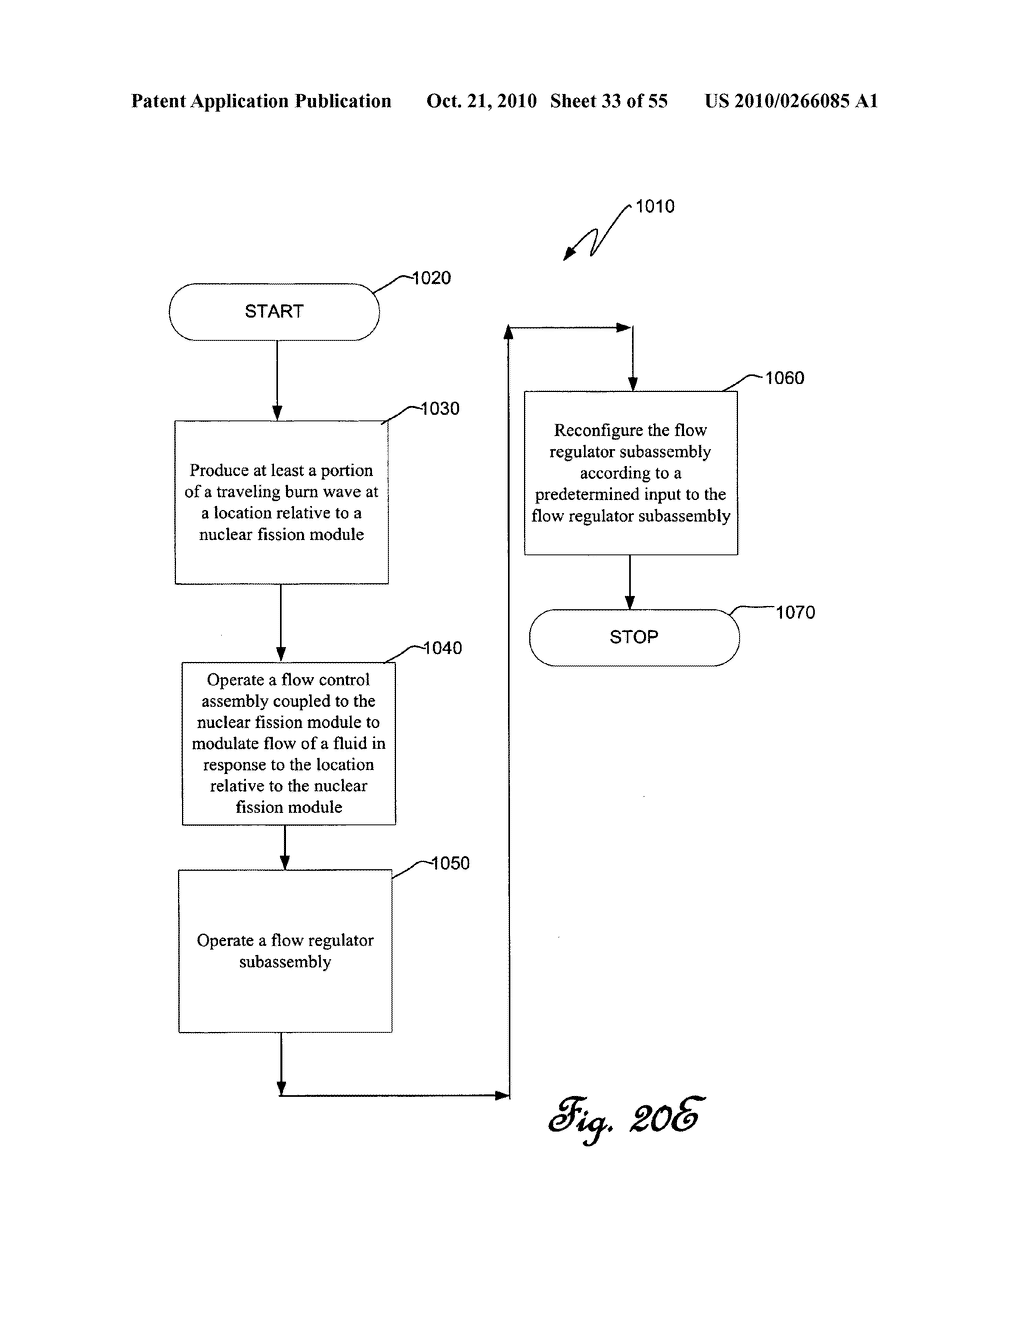 Nuclear fission reactor, flow control assembly, methods therefor and a flow control assembly system - diagram, schematic, and image 34